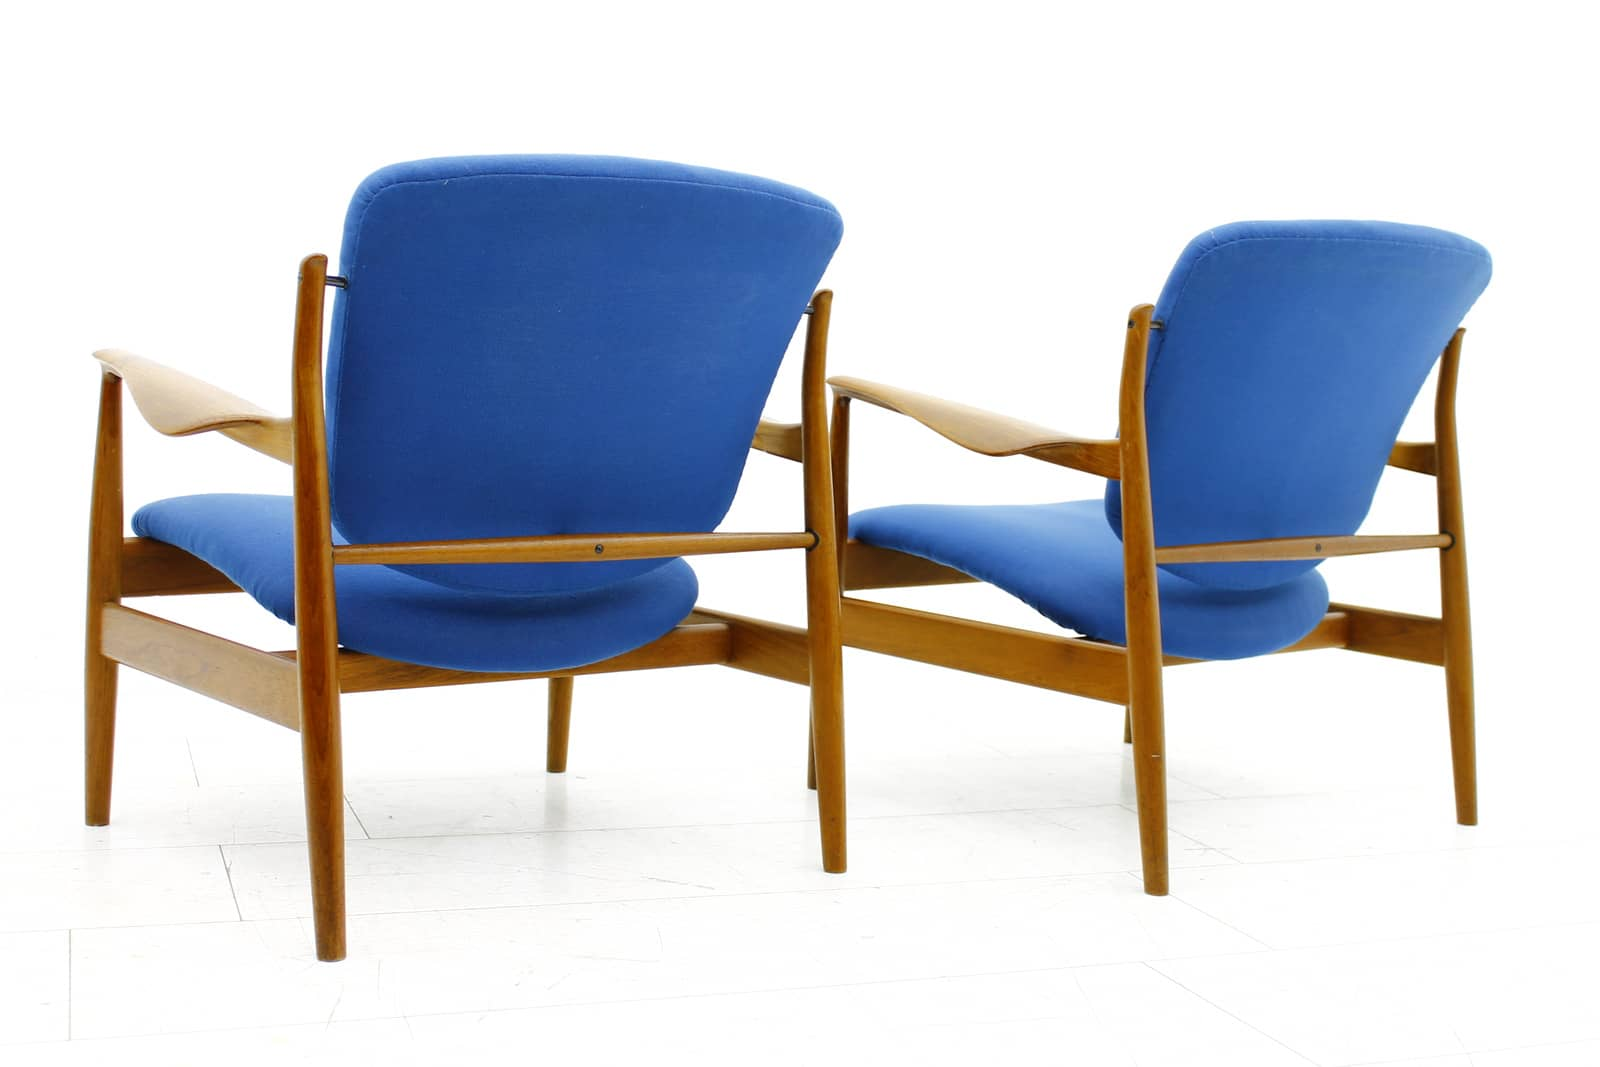 A Pair Finn Juhl Teak Lounge Chairs FD 136, France & Son, 1958 (l)